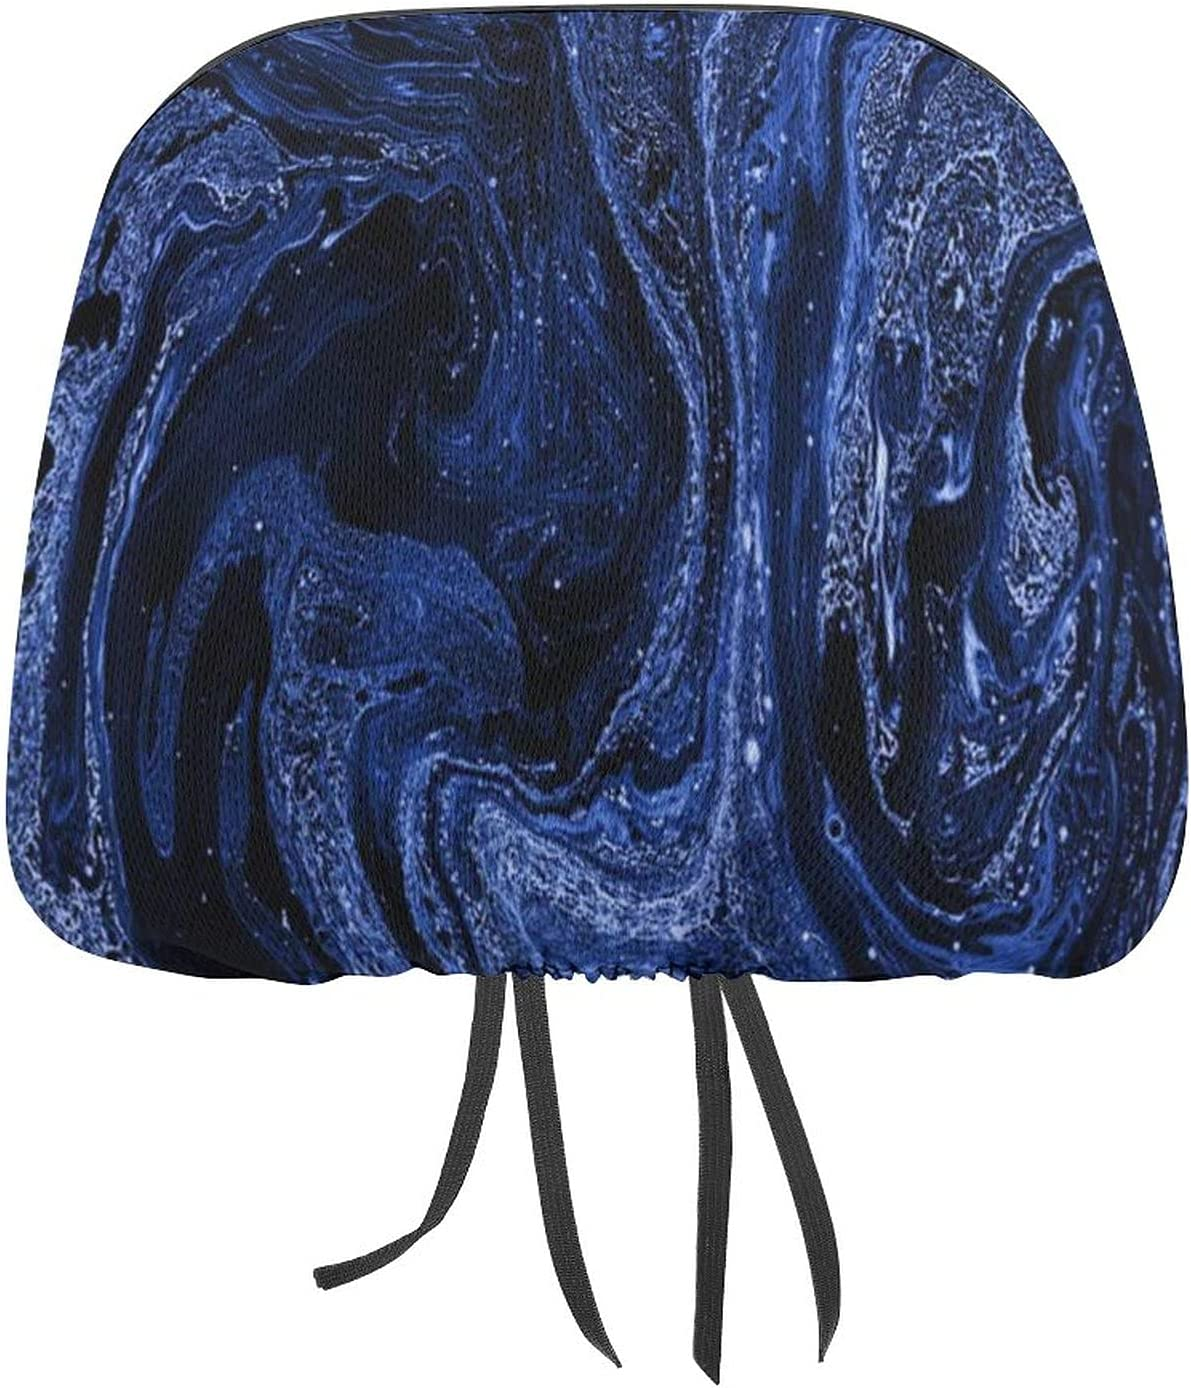 Auto Car Seat Headrest Cover Popular popular Men Beautiful Blue Women Sea Marble Recommended